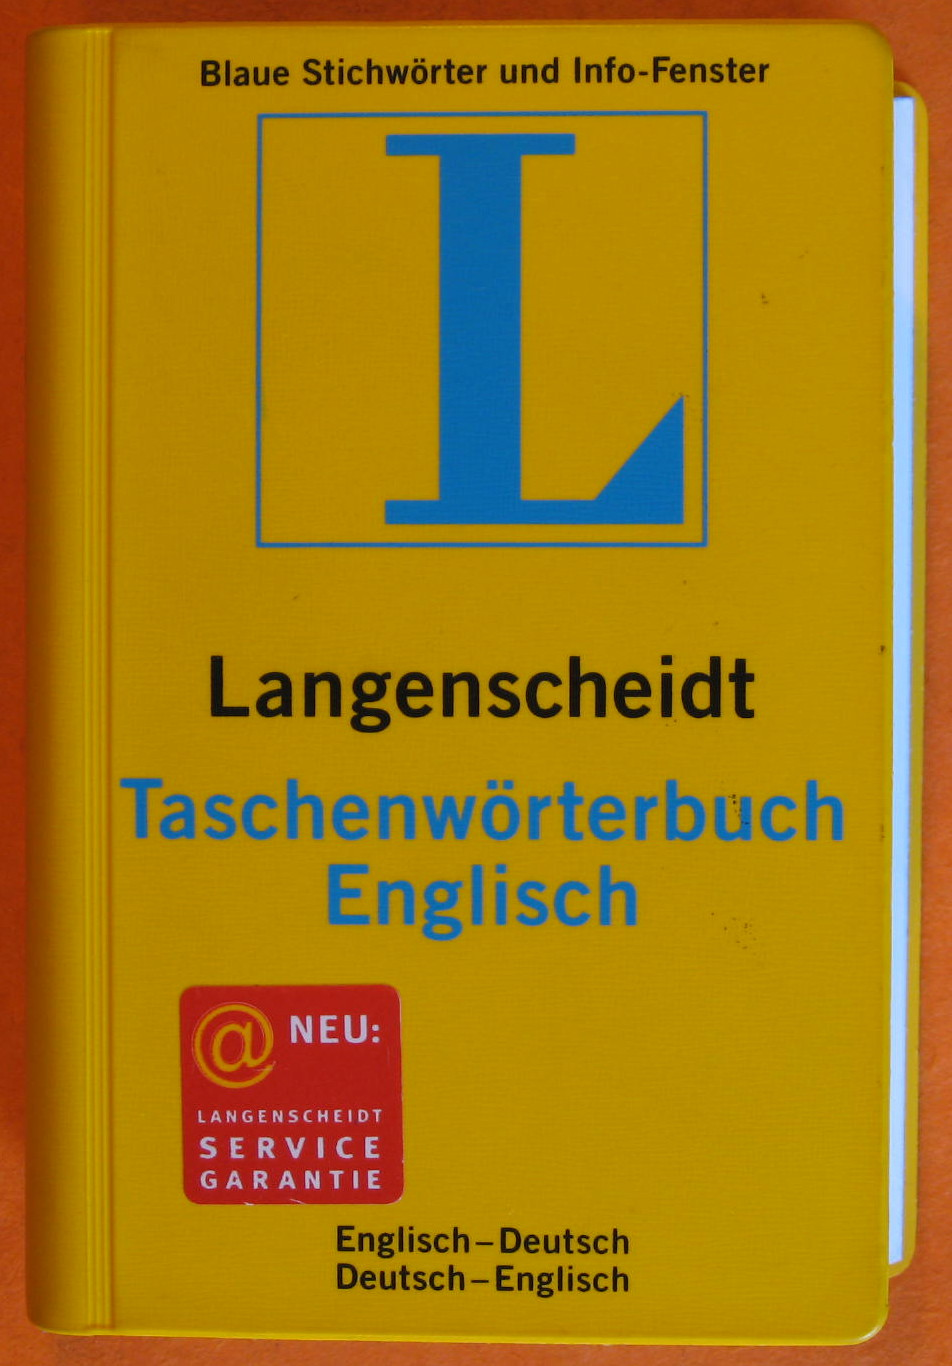 Englisch-Deutsch / Deutsch-Englisch. Taschenwörterbuch. Langenscheidt. Neues Cover. English - Dutch, Dutch - English Dictionary, No Author